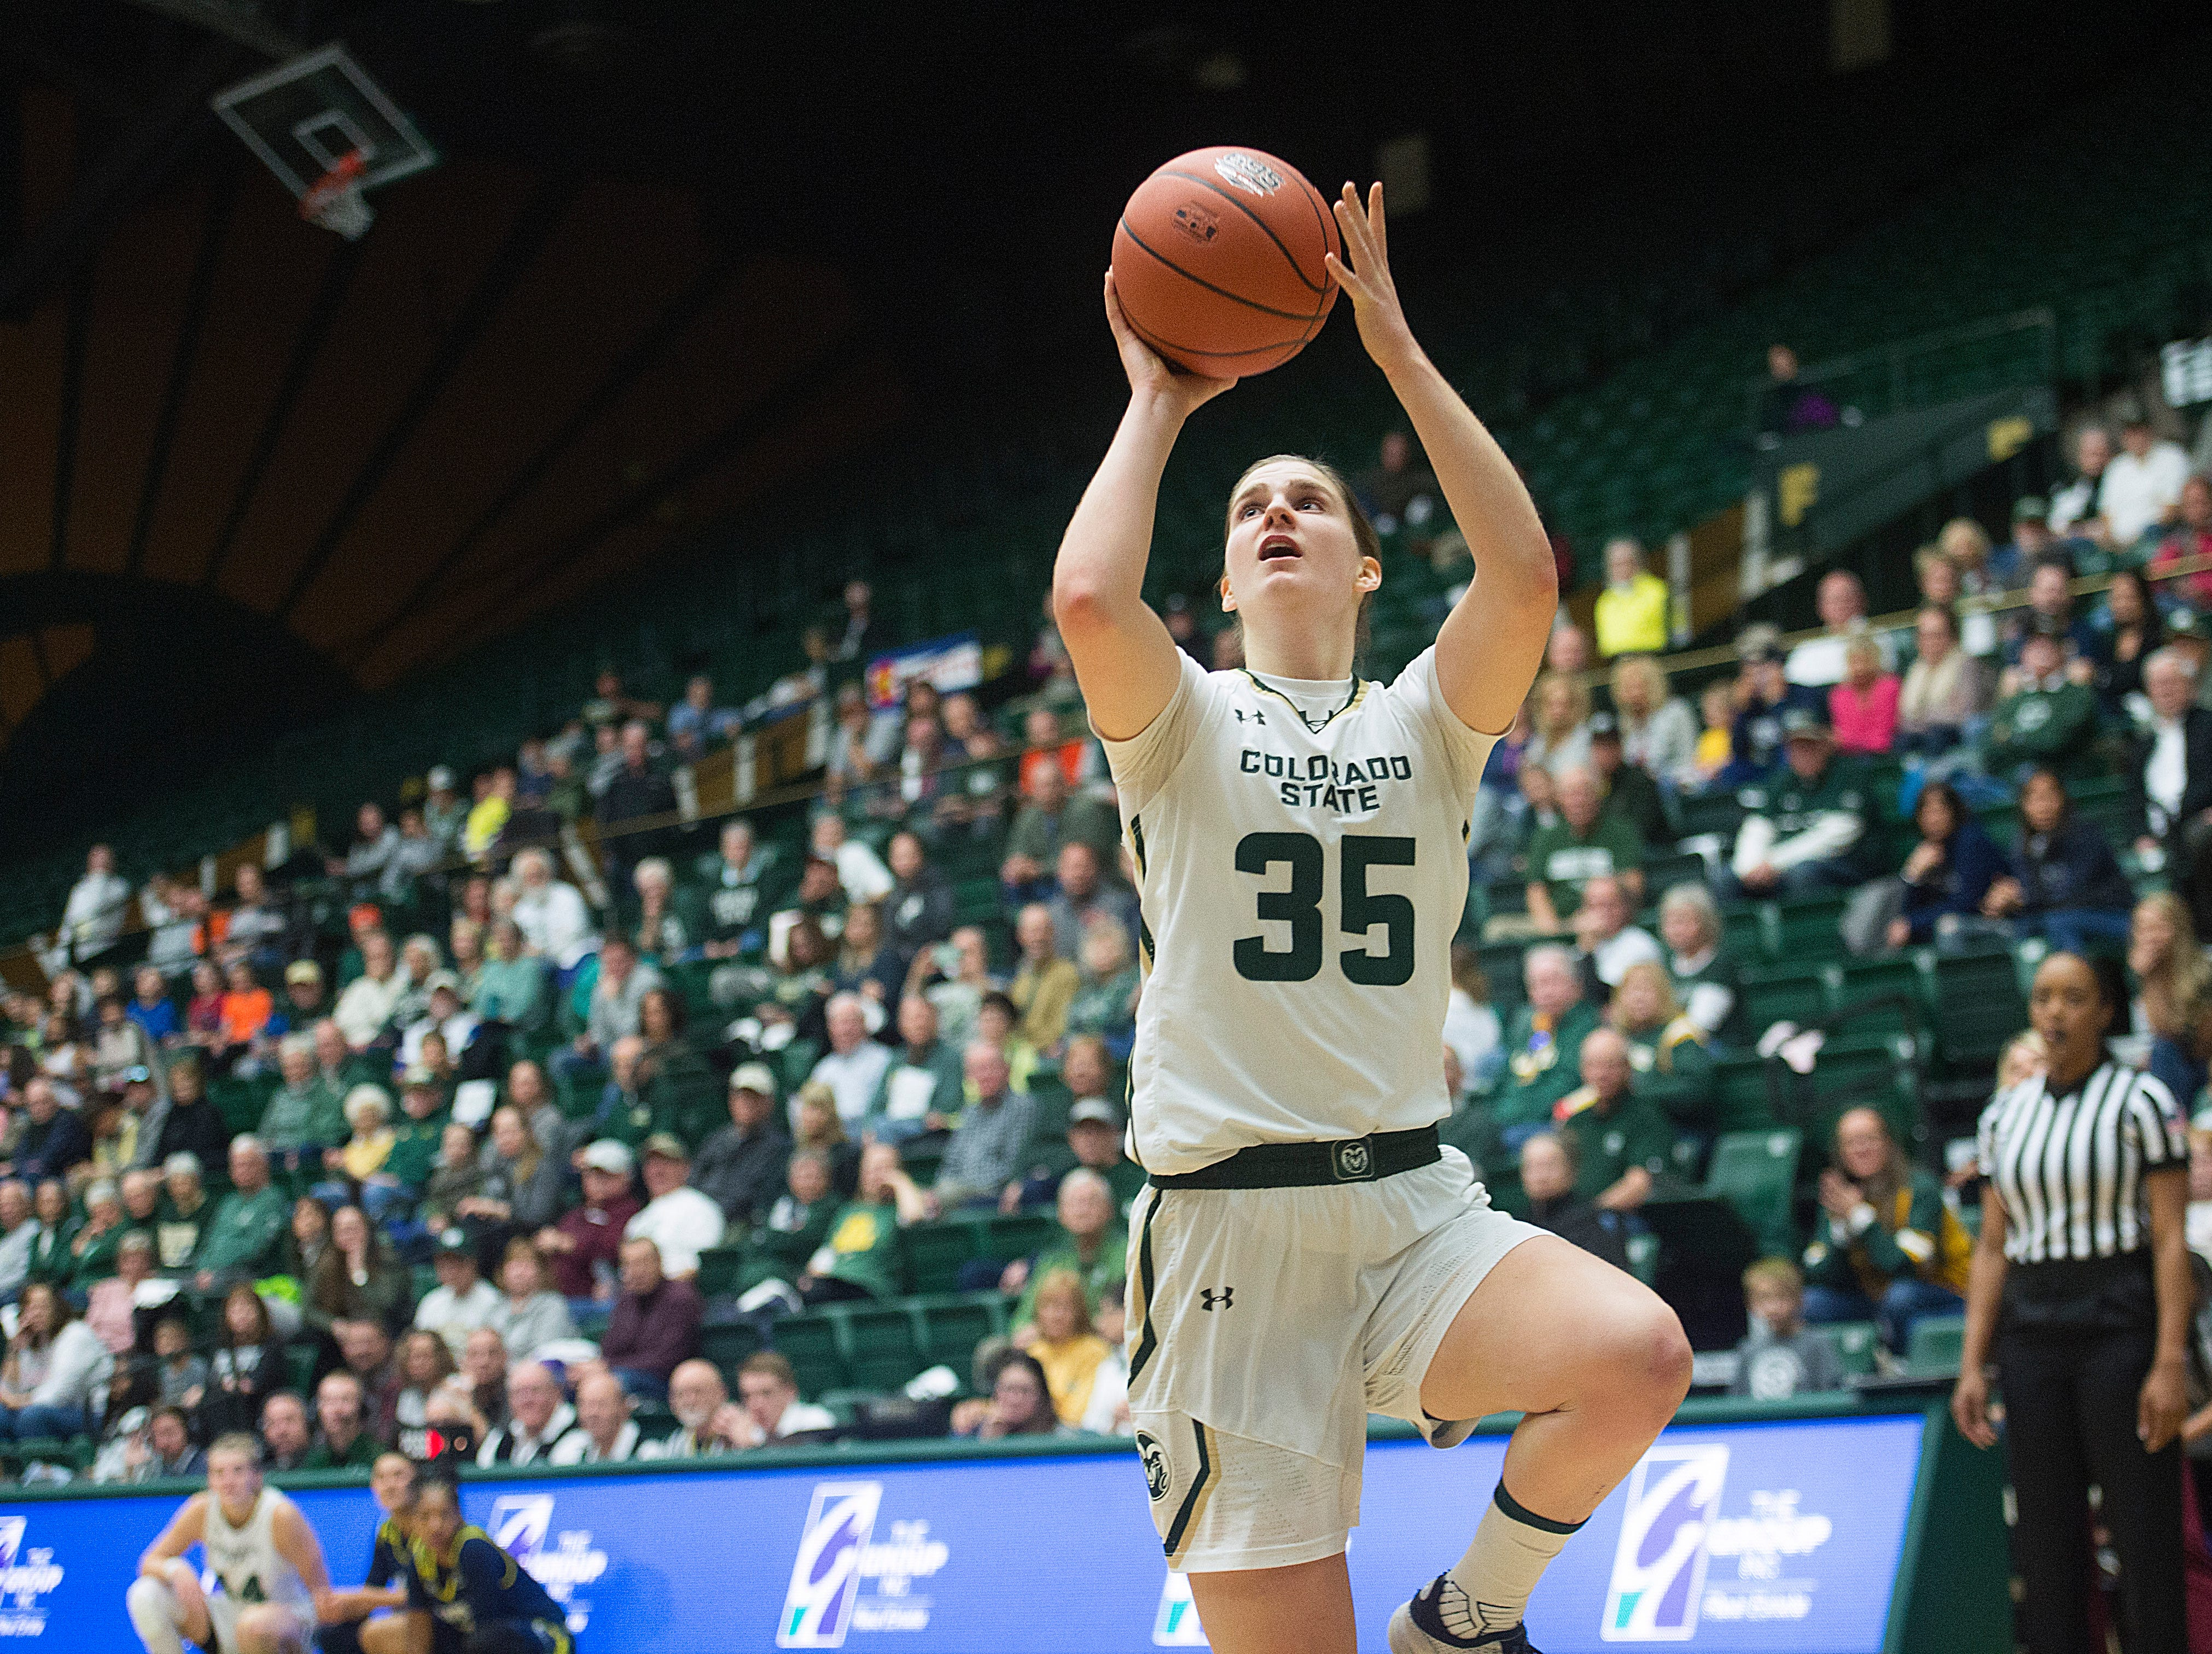 CSU guard Lore Devos jumps for a two point attempt during a game against Northern Arizona at Moby Arena on Wednesday, December 5, 2018.